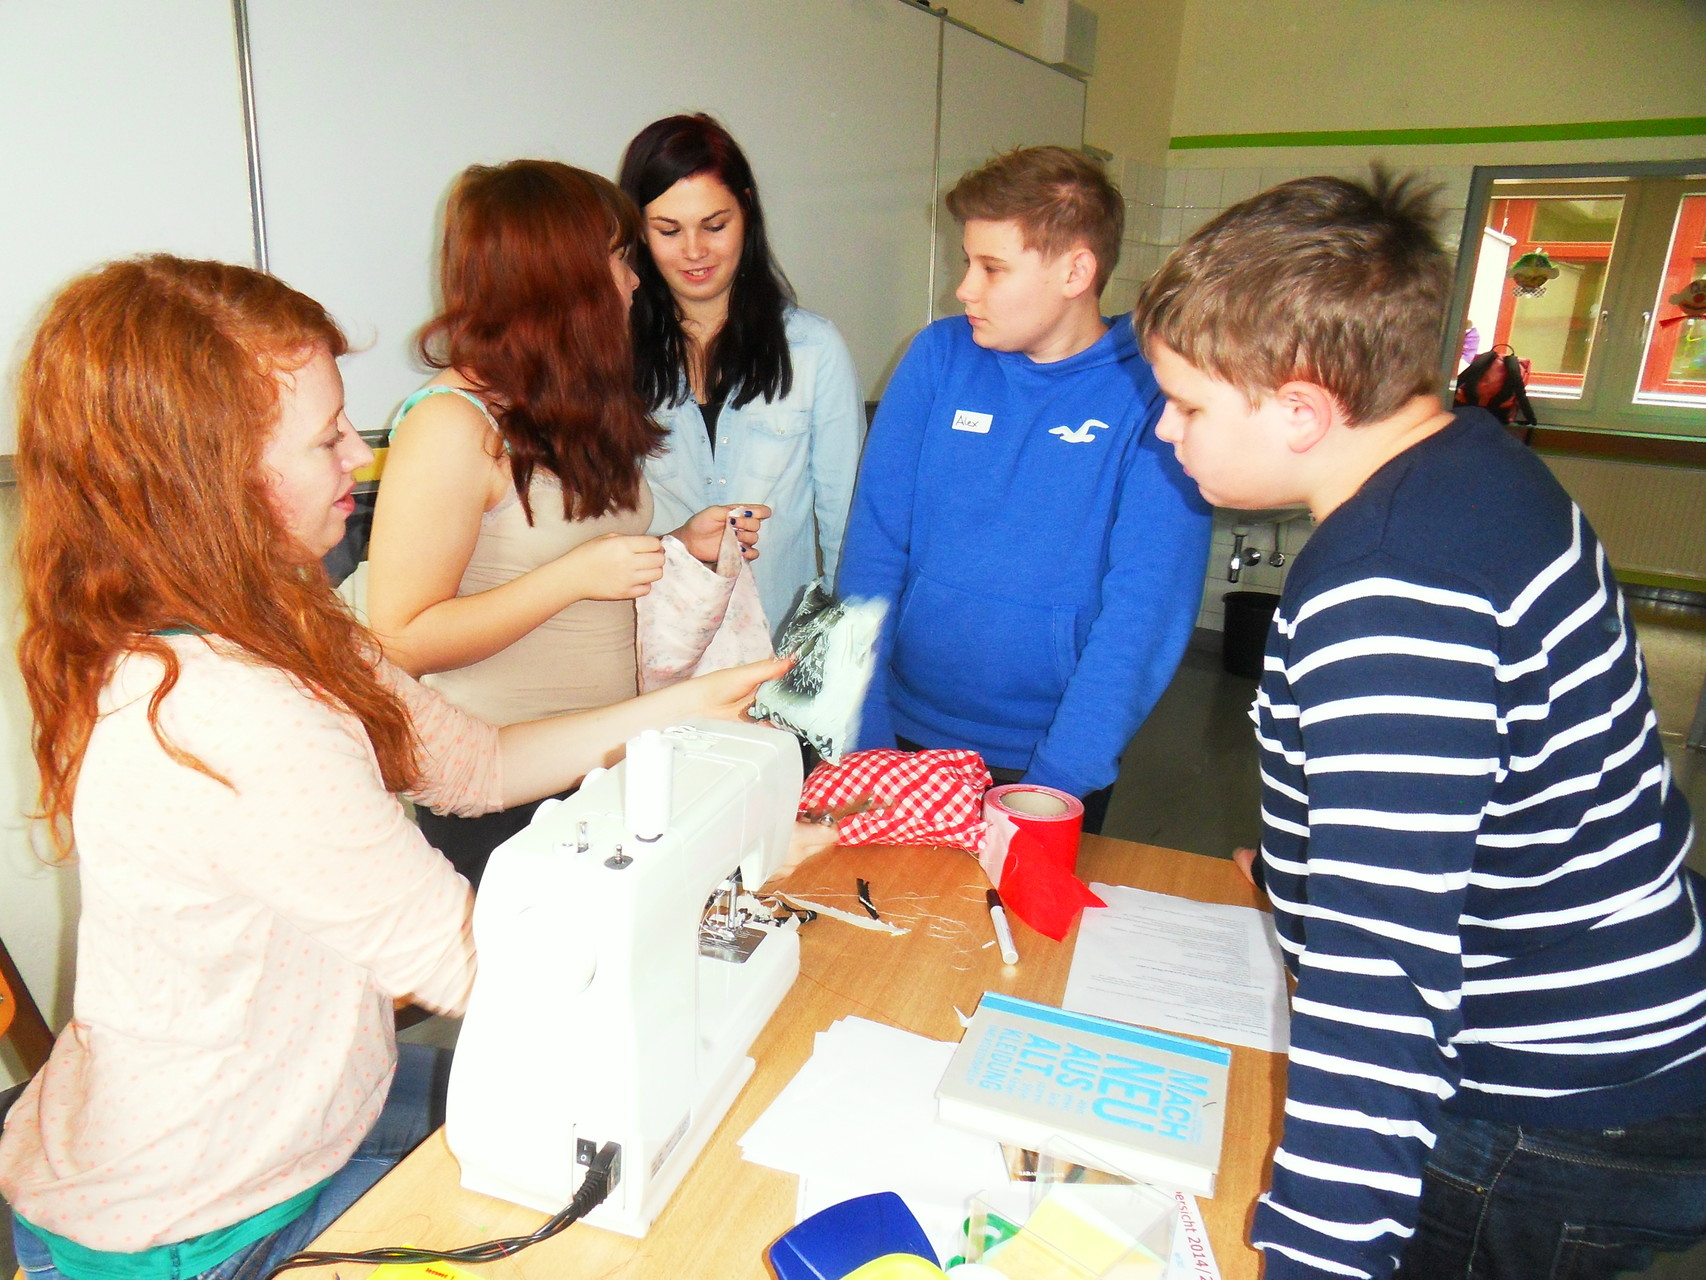 Craftivism-Workshop an der NMS Rust (Foto: NMS Rust)